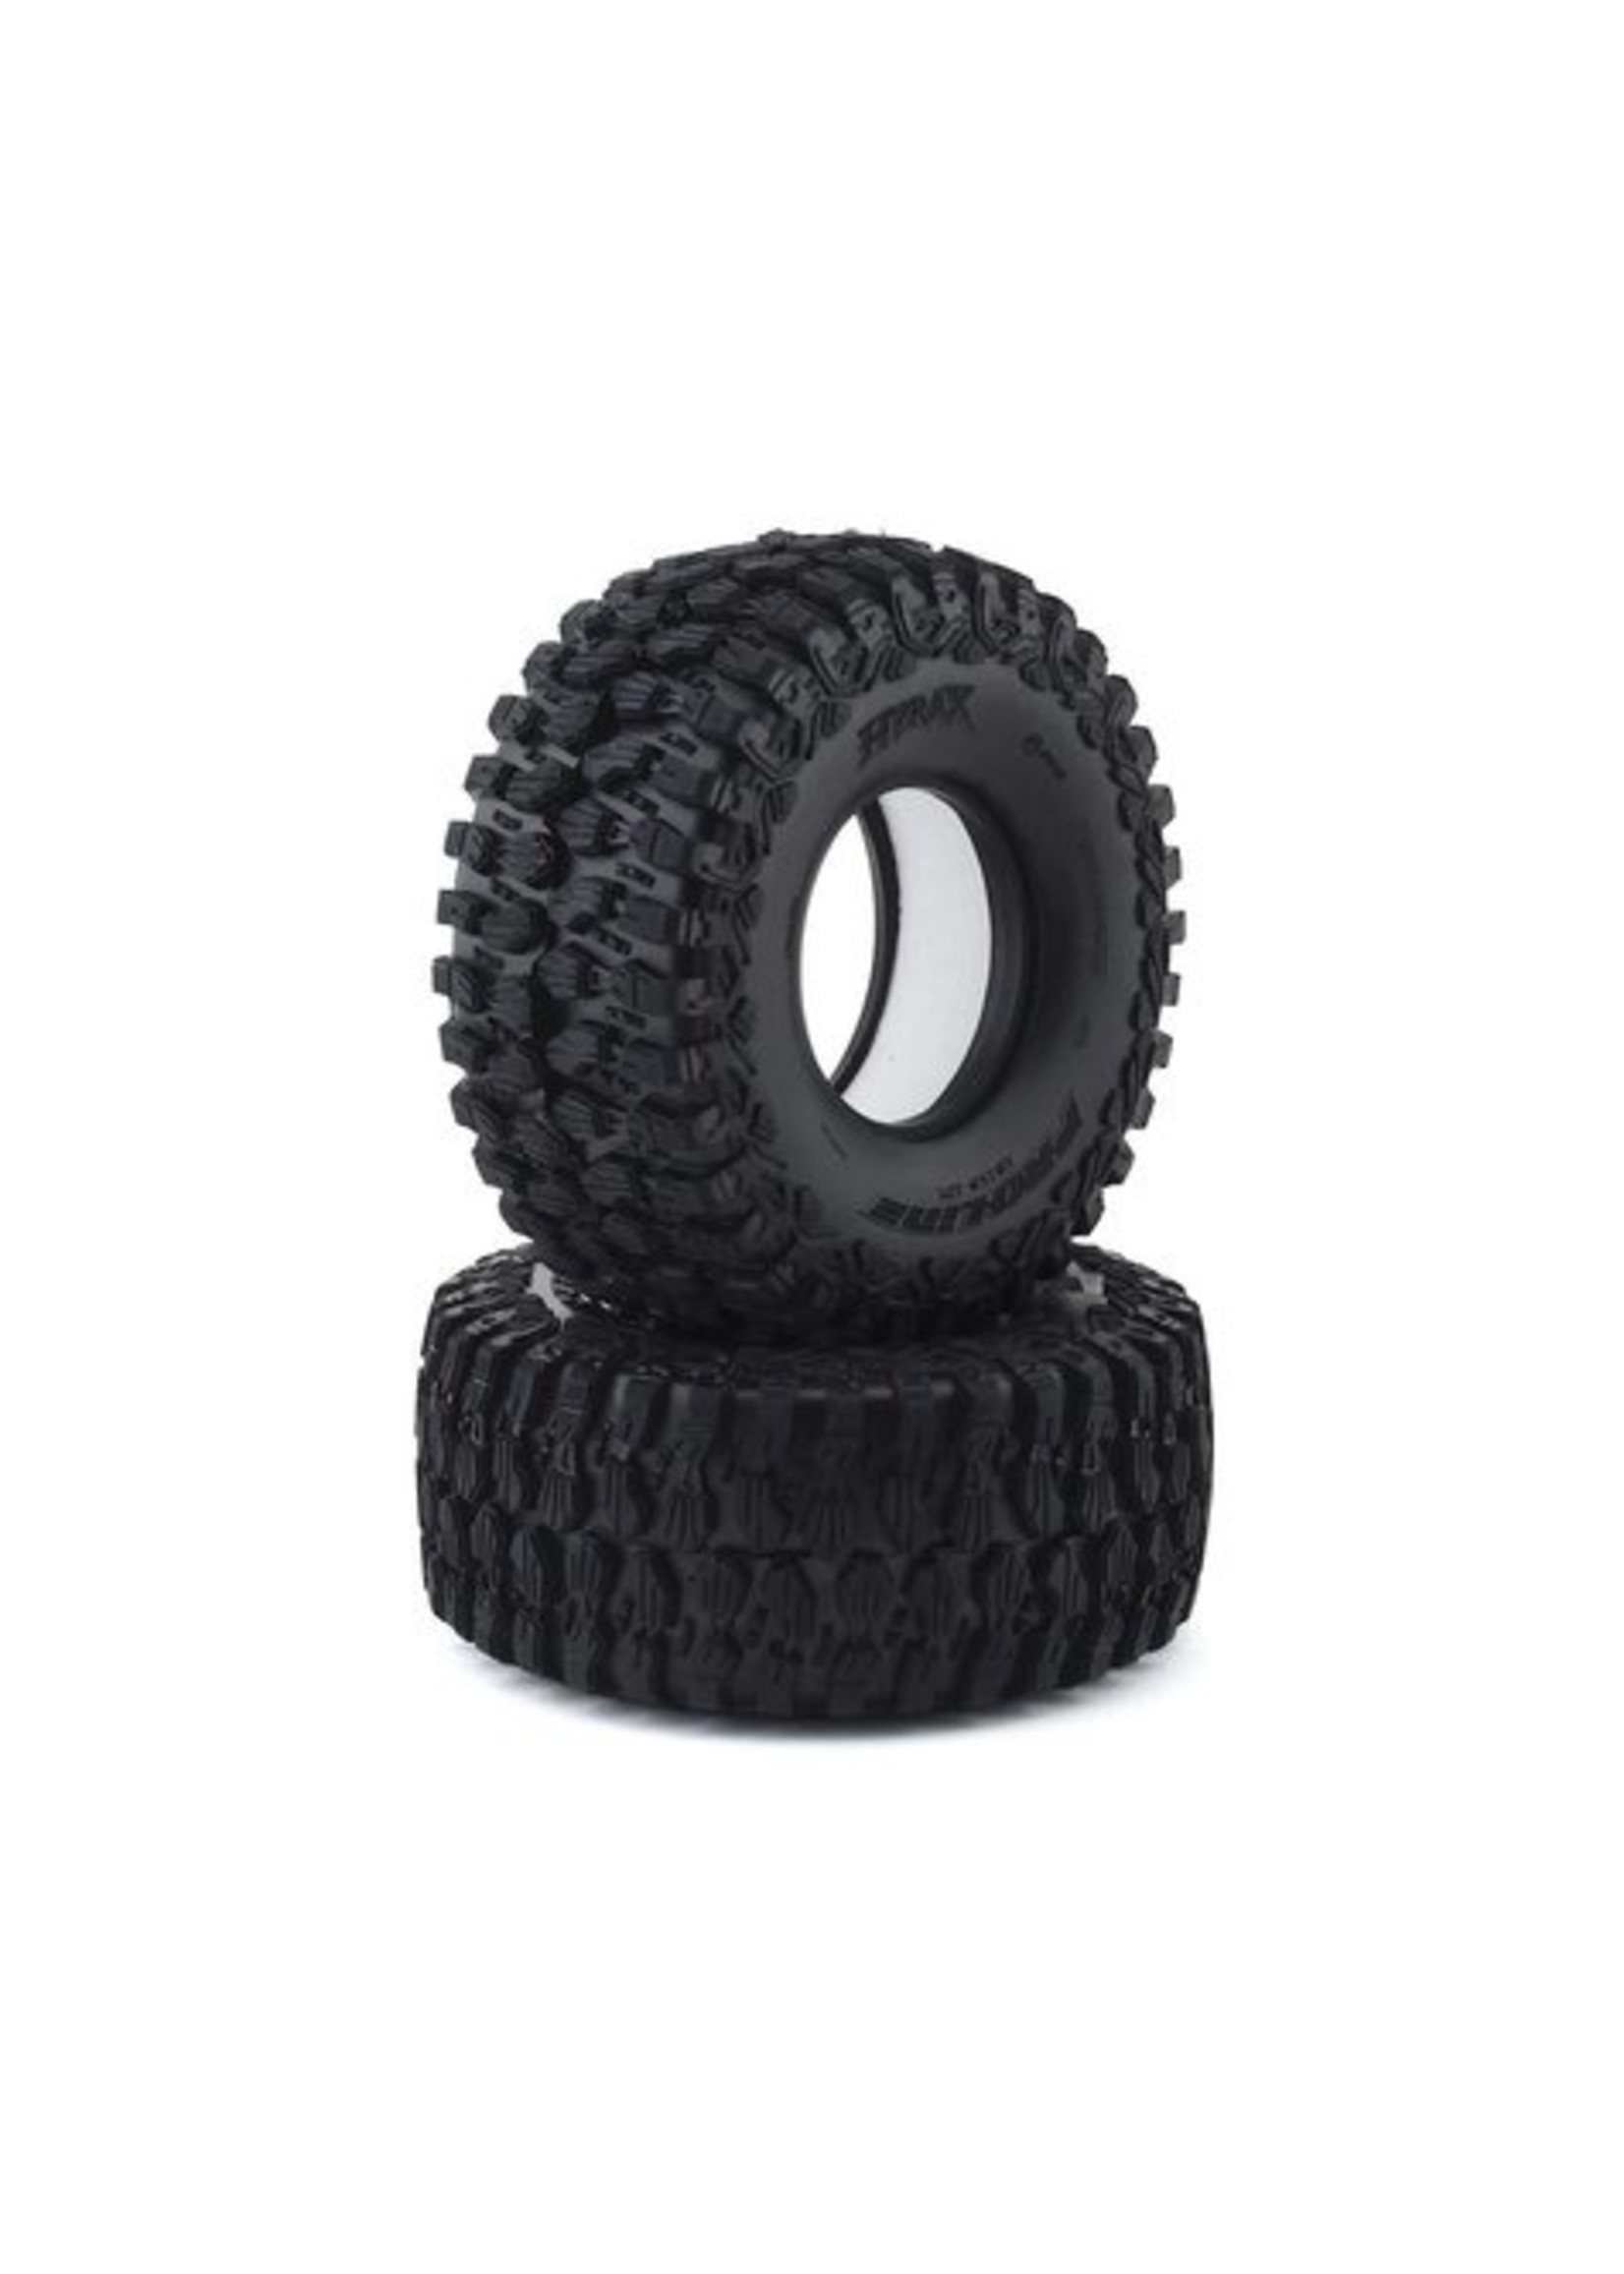 Pro-Line Racing PRO10163-00 Pro-Line Hyrax Tires for Unlimited Desert Racer F/R